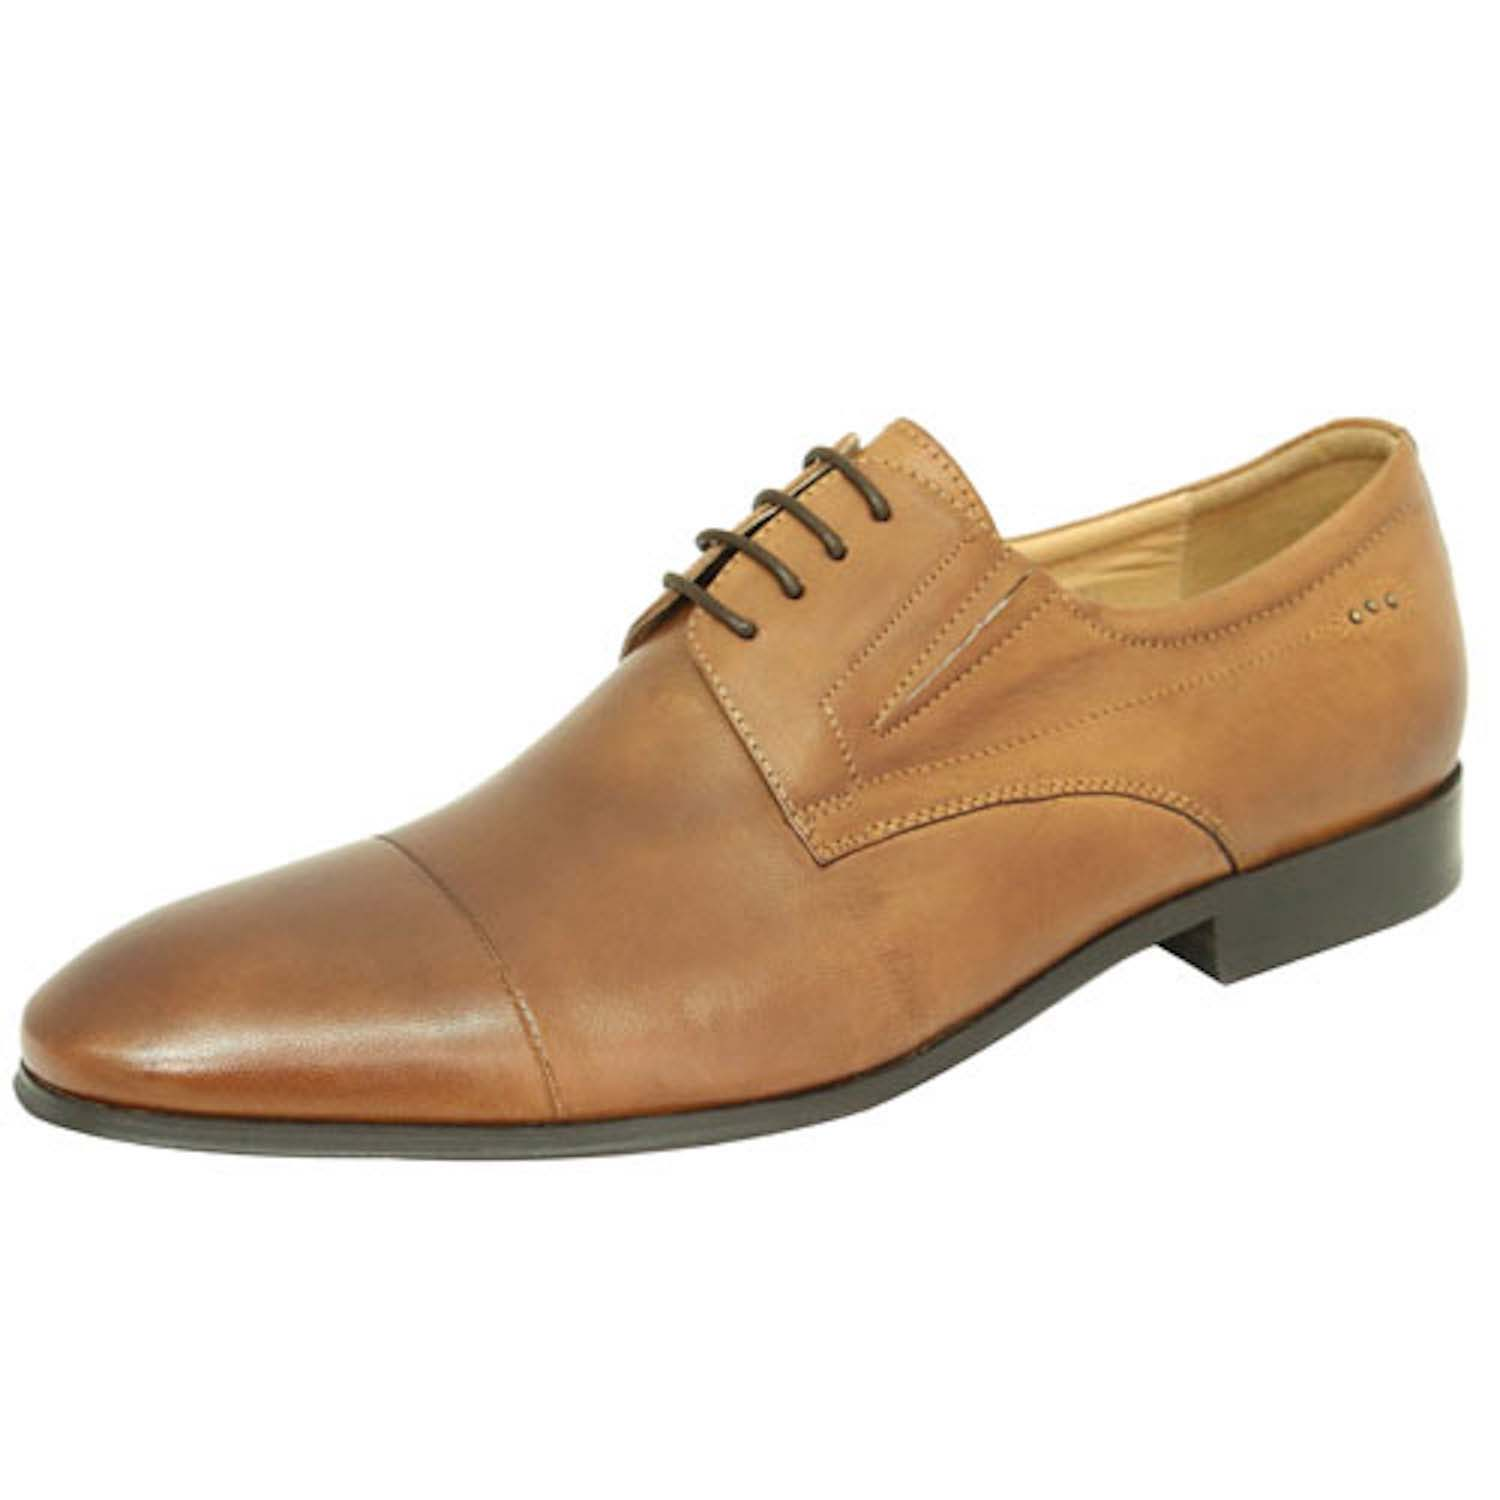 Tan Lace-Up Formal Shoes